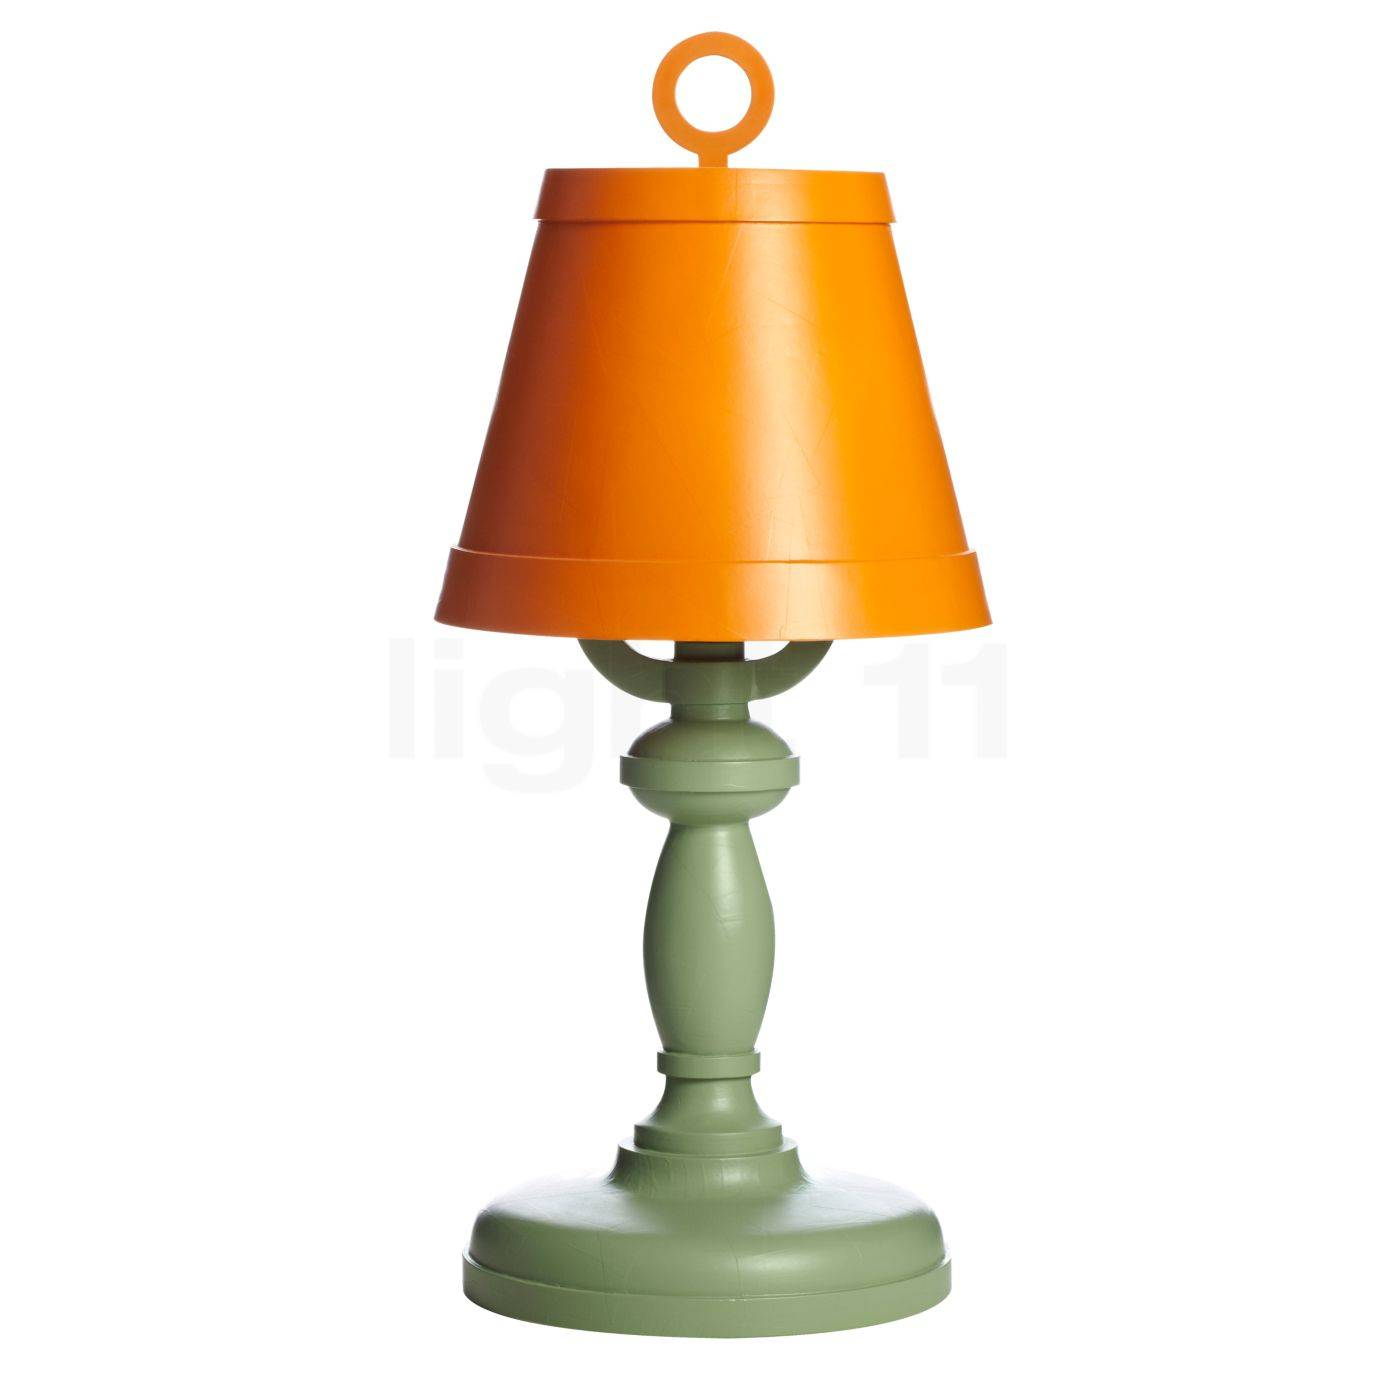 Moooi Paper Lampe de table, orange/vert olive